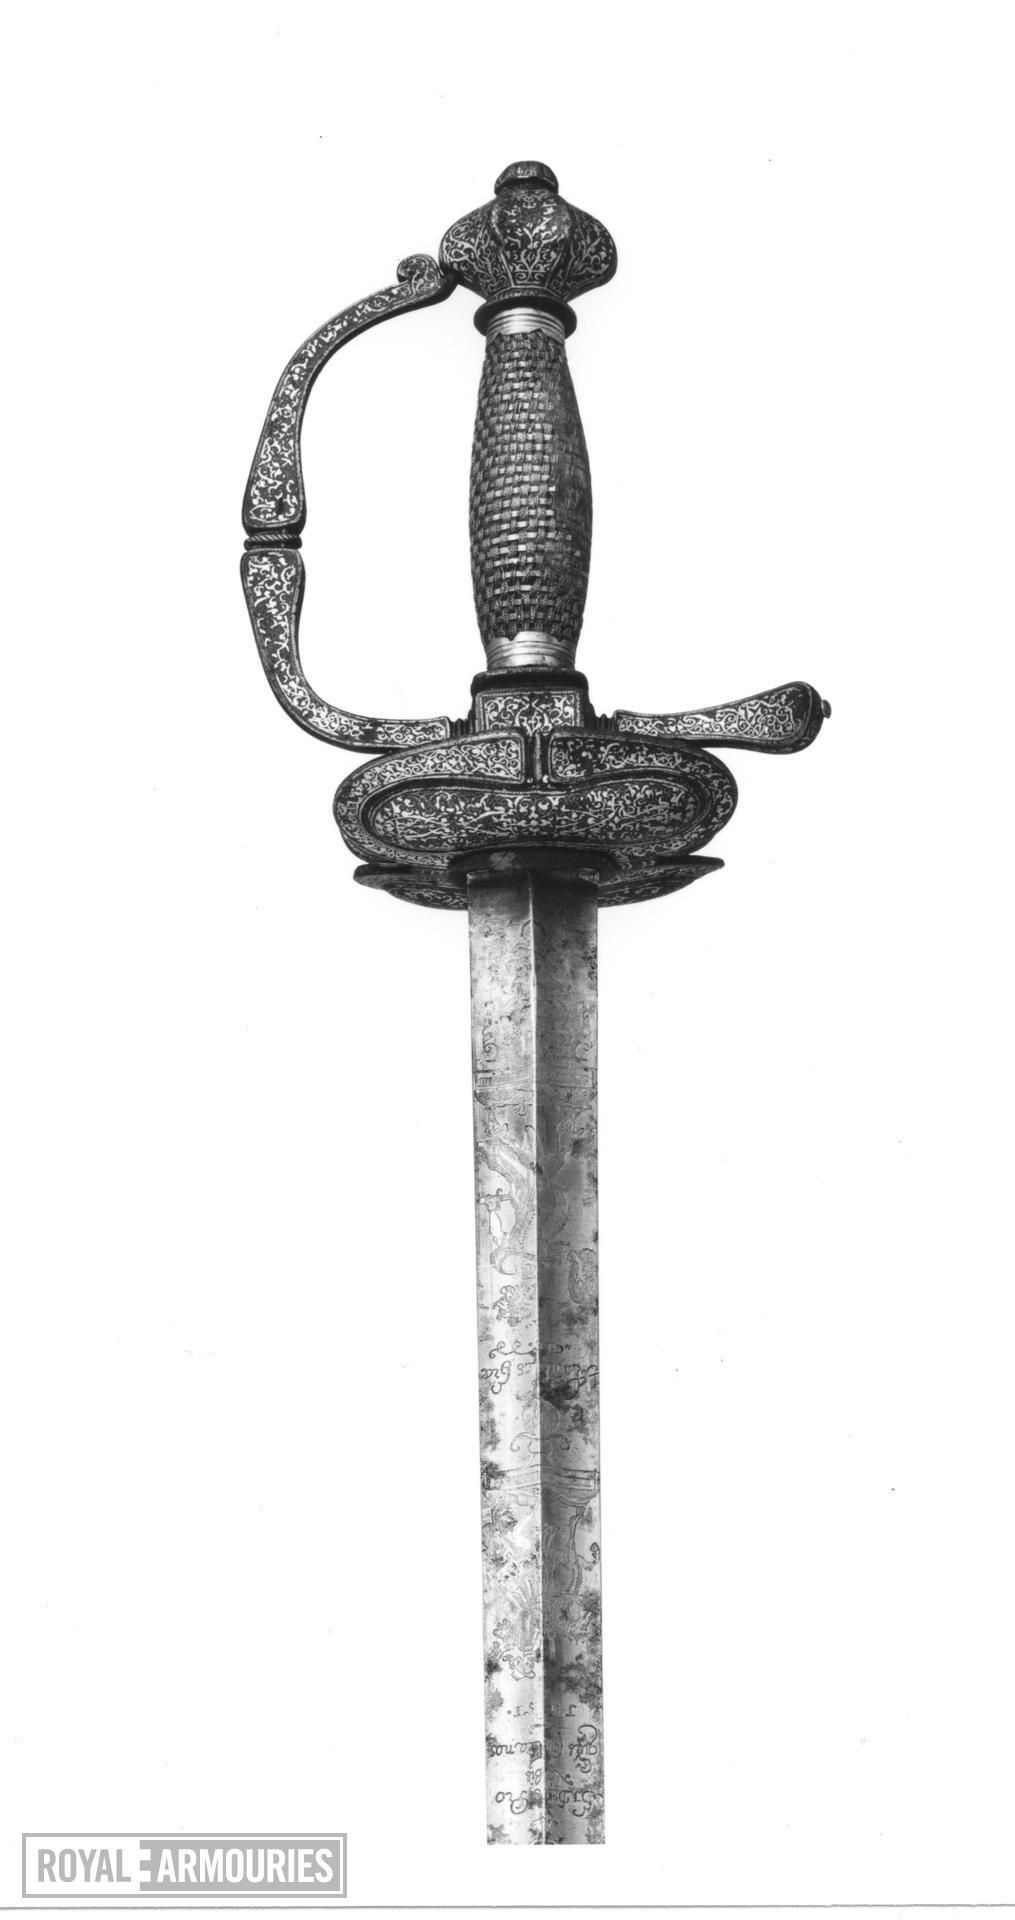 Sword and scabbard Small sword and scabbard. Traditionally the sword of Major General Charles Worsley